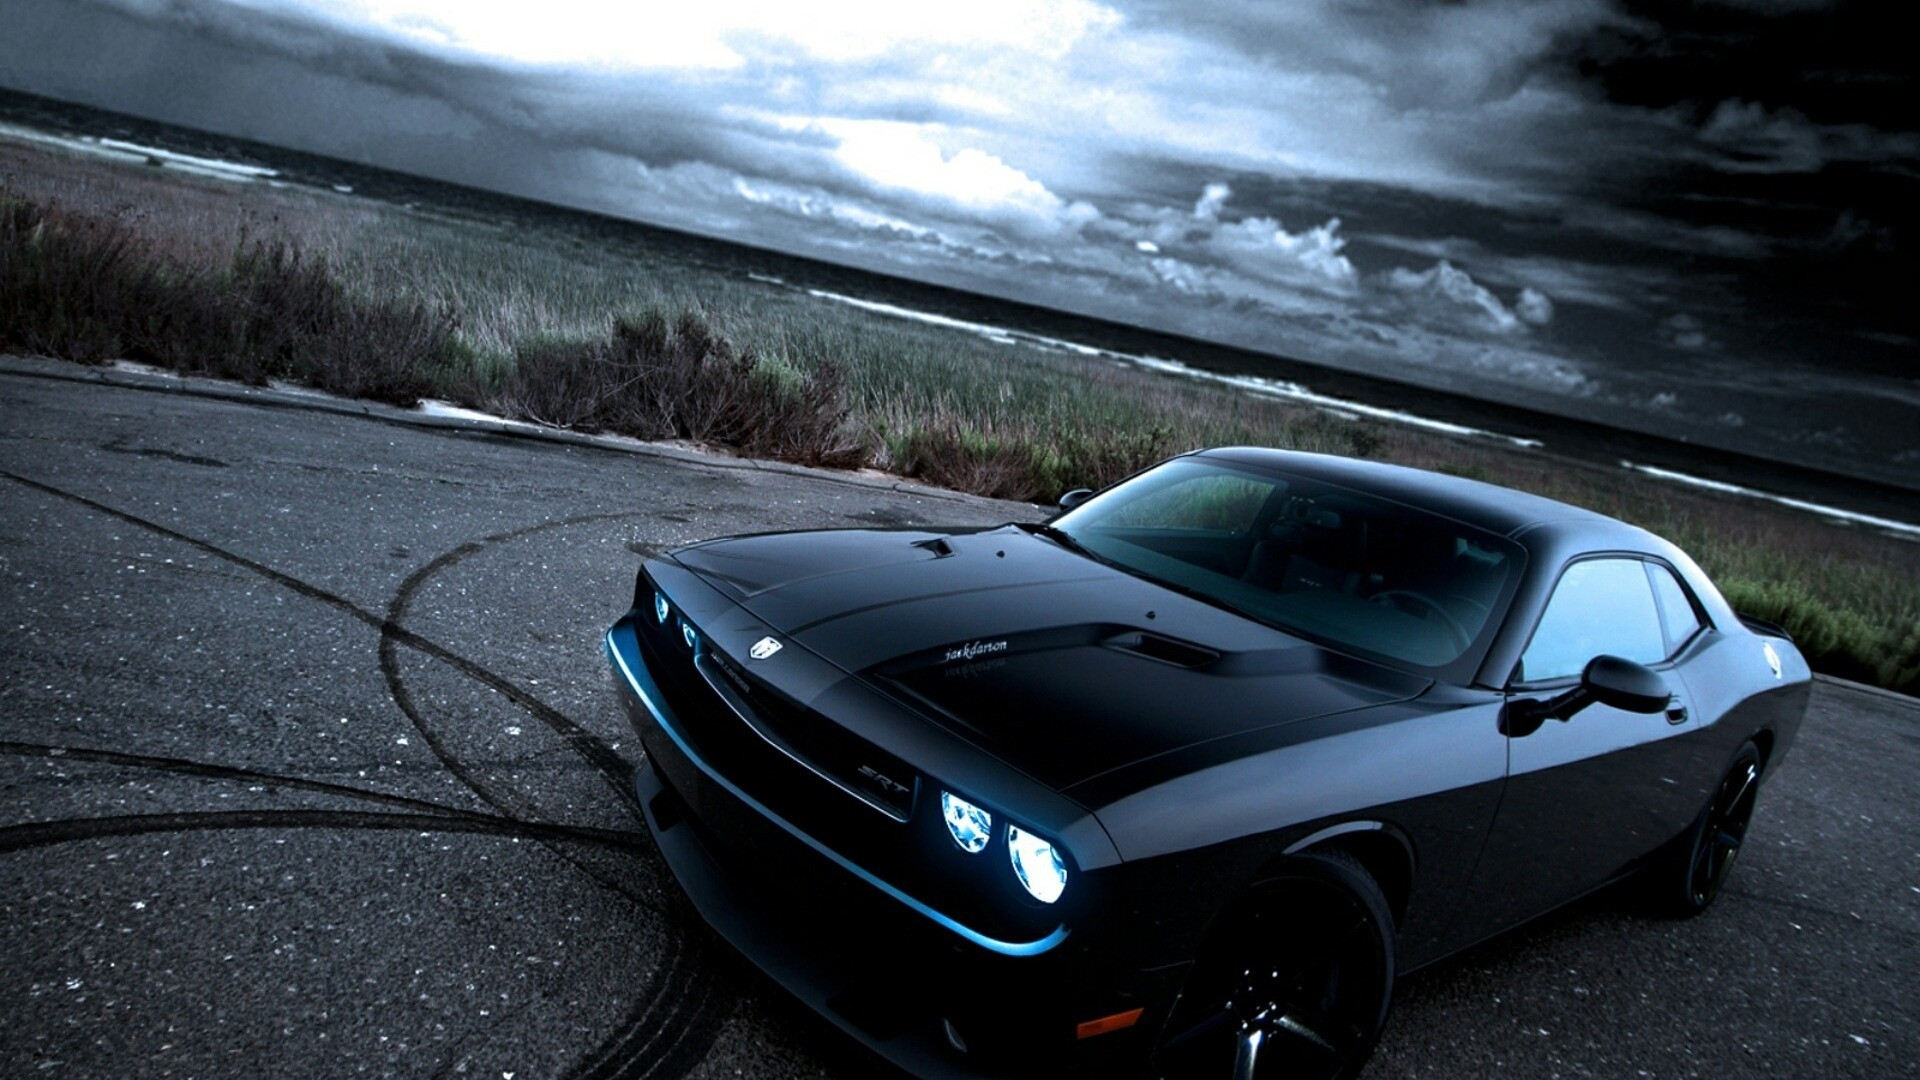 2048x1280 High Resolution Car Wallpapers Desktop 15 With